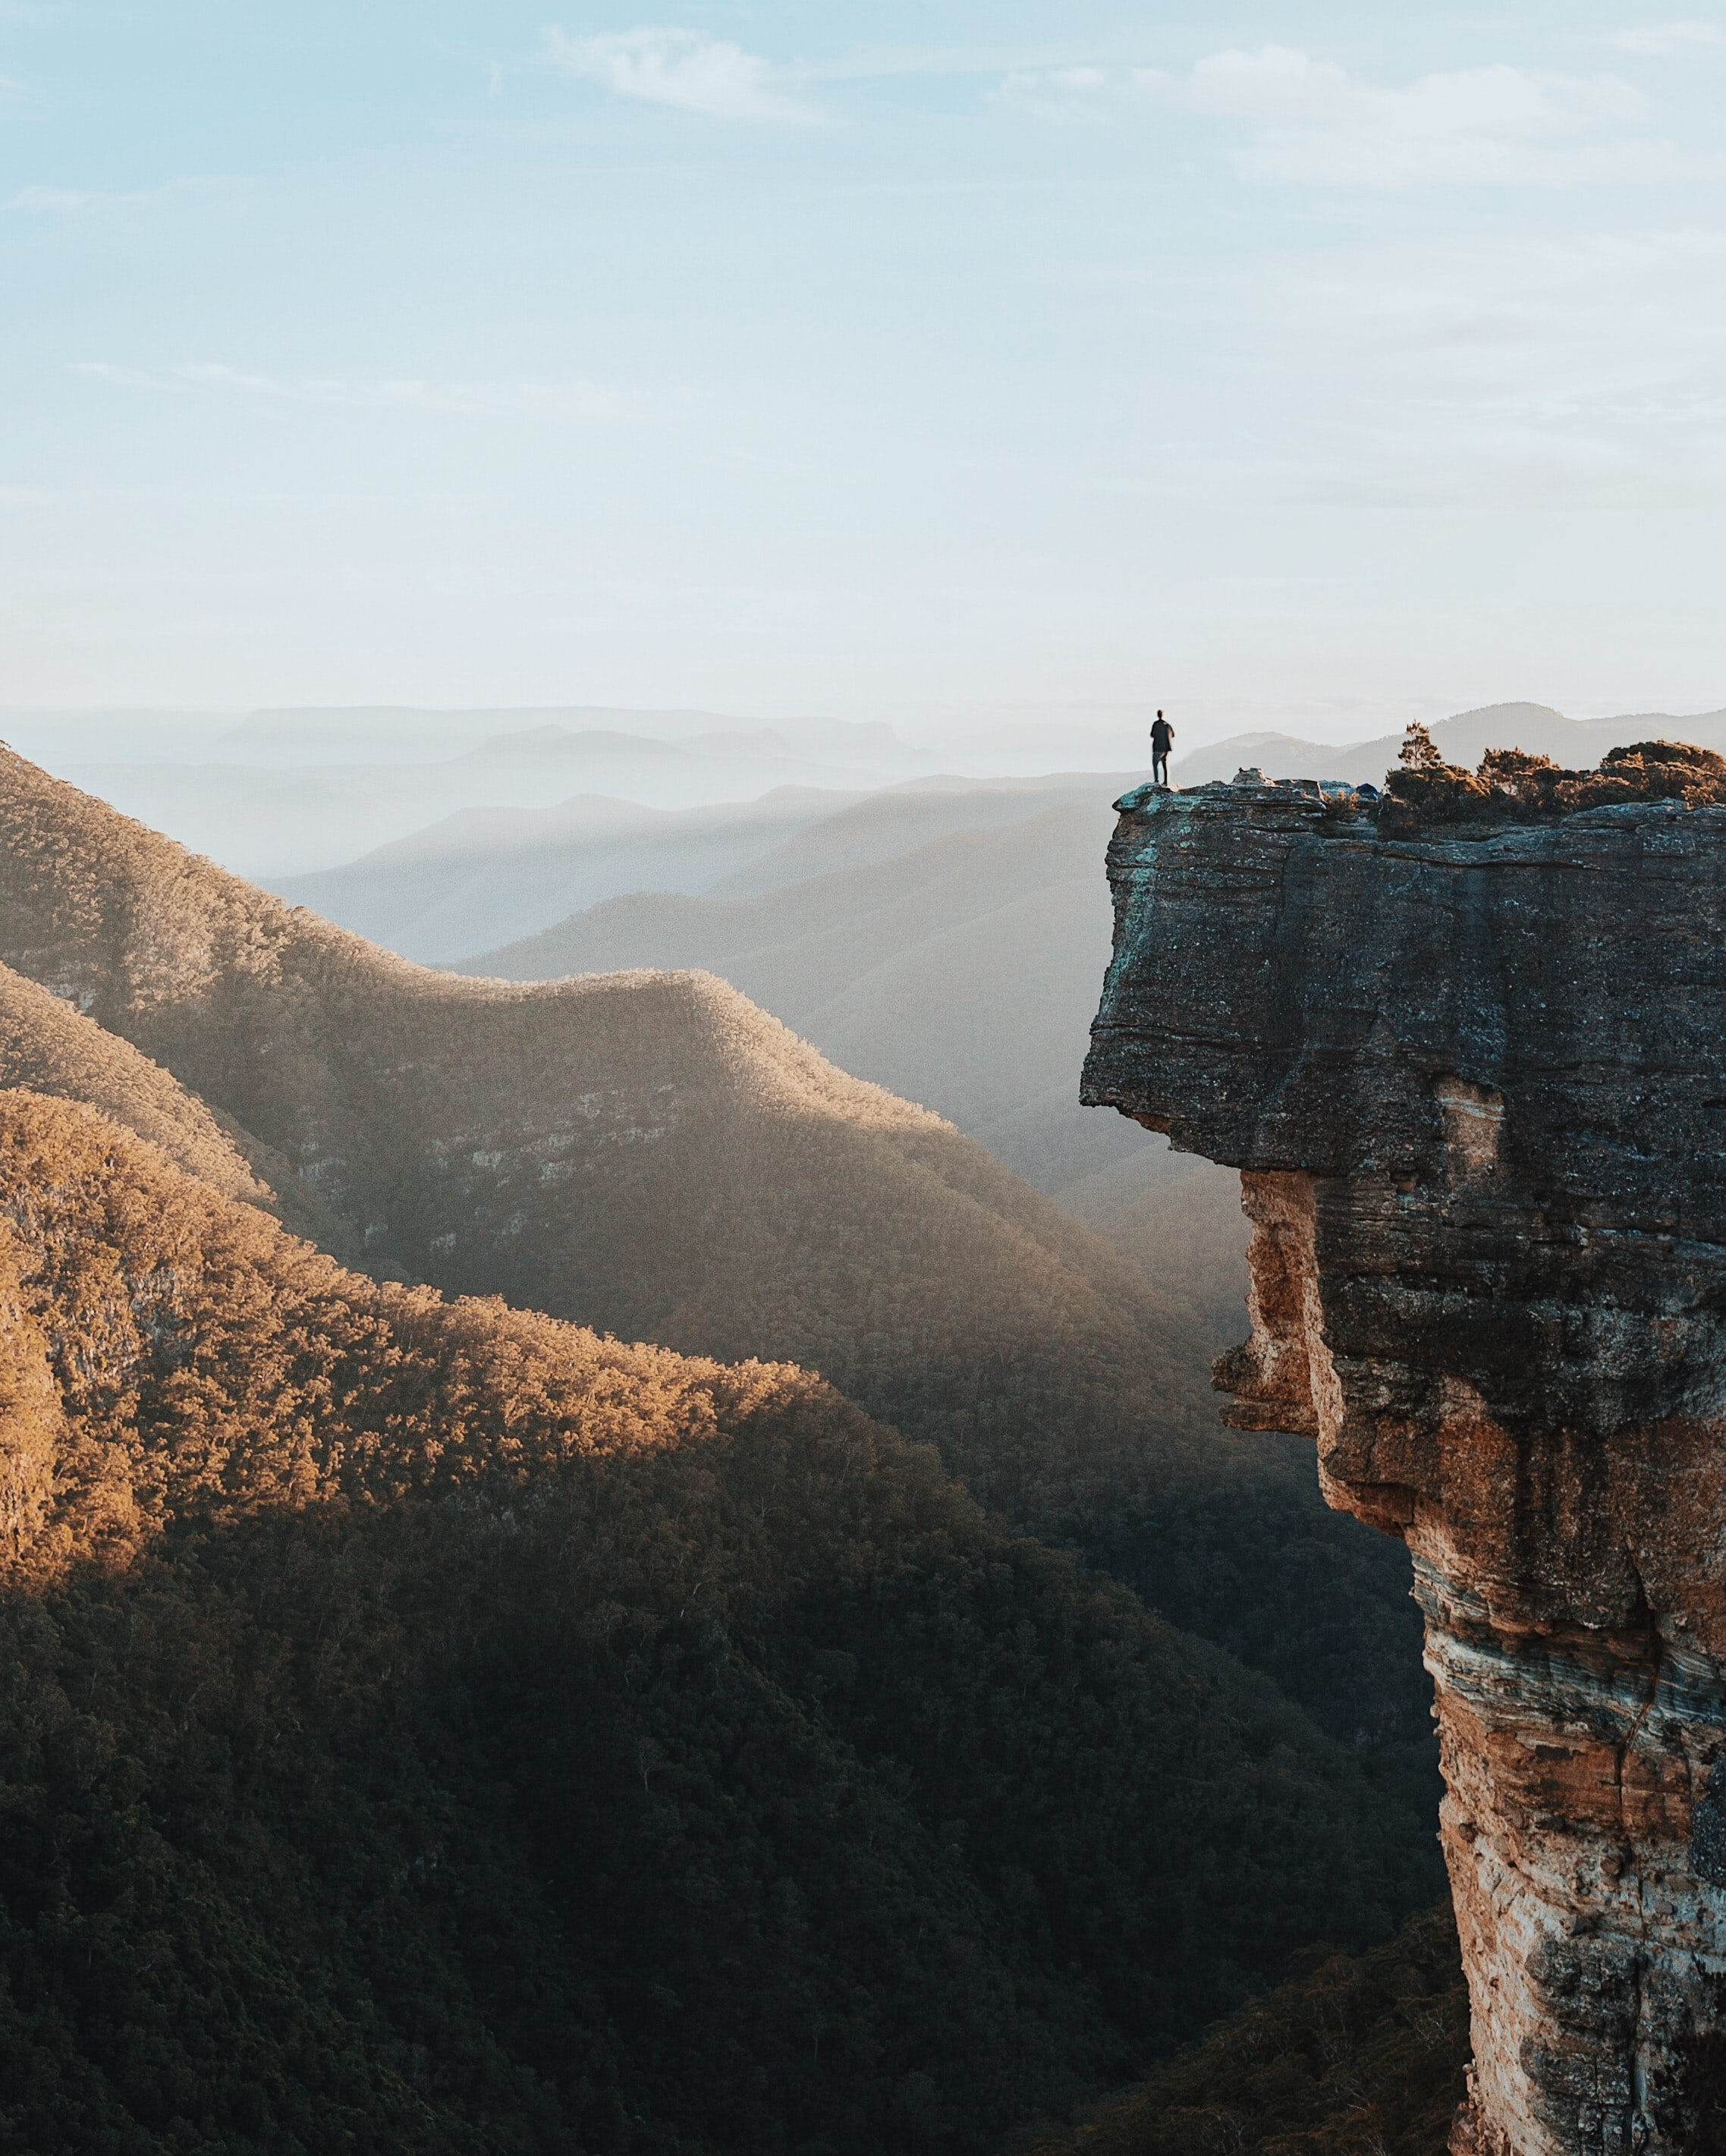 man standing on rock cliff overlooking mountains